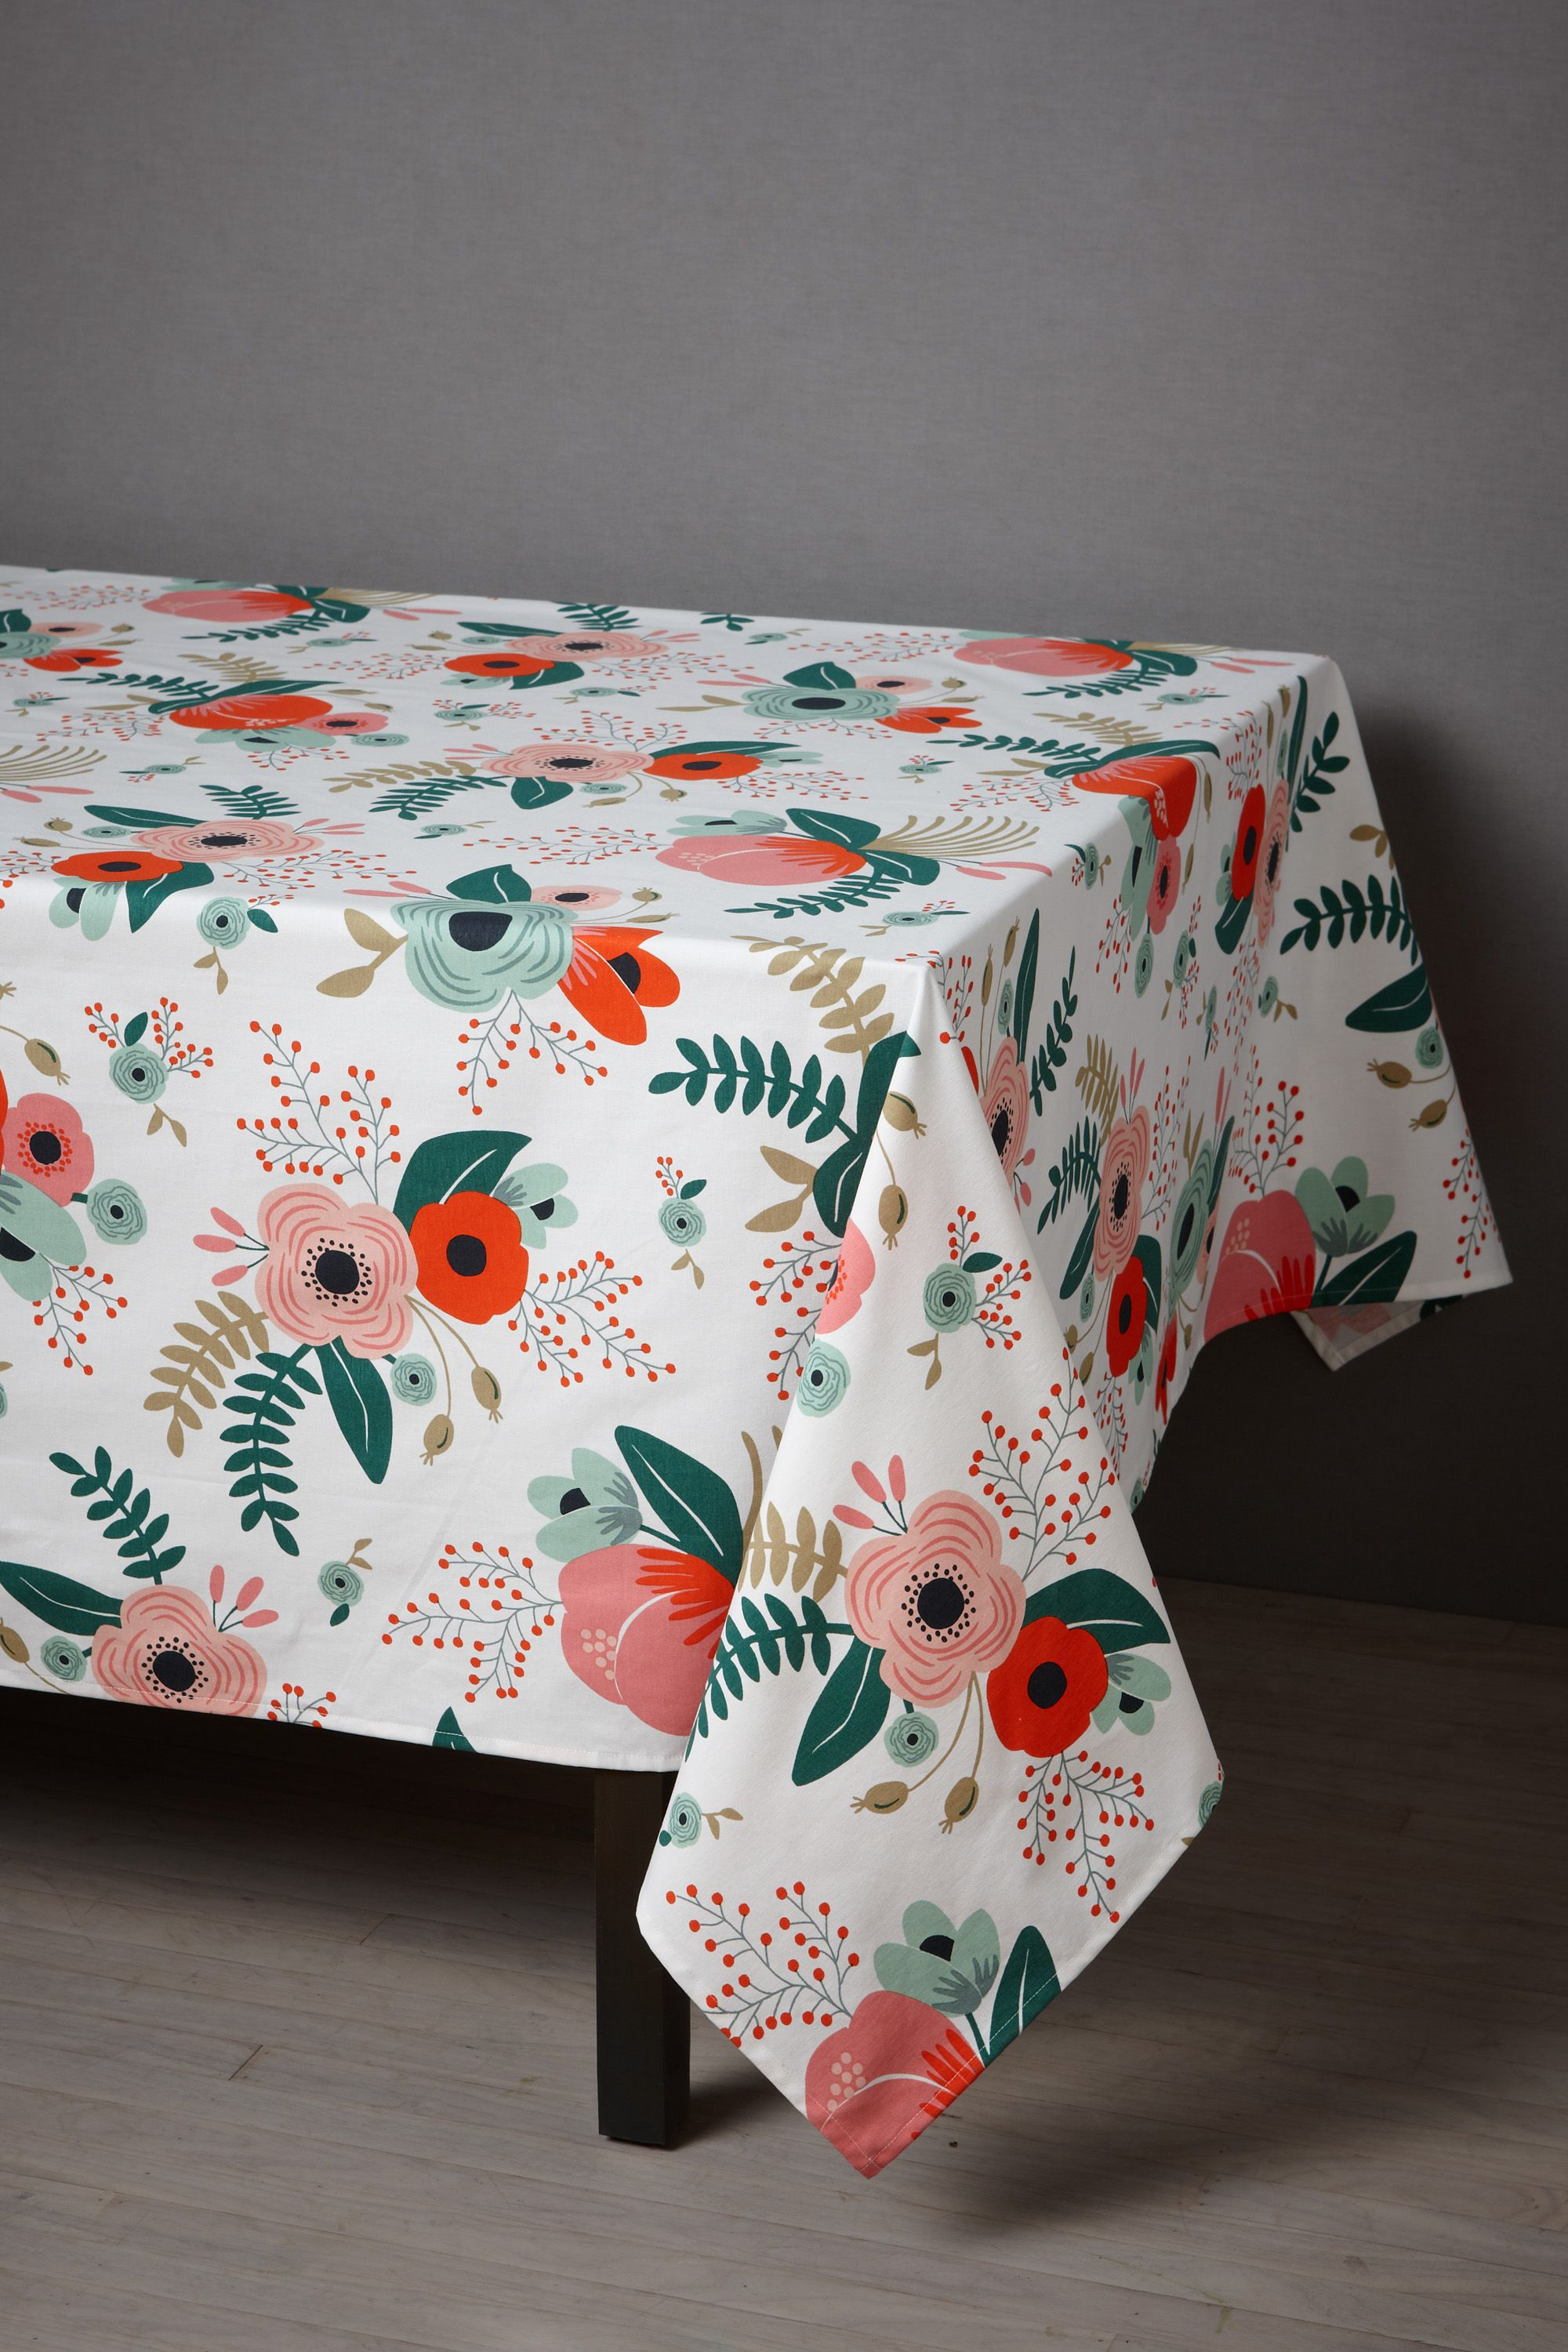 Botanical Garden Tablecloth